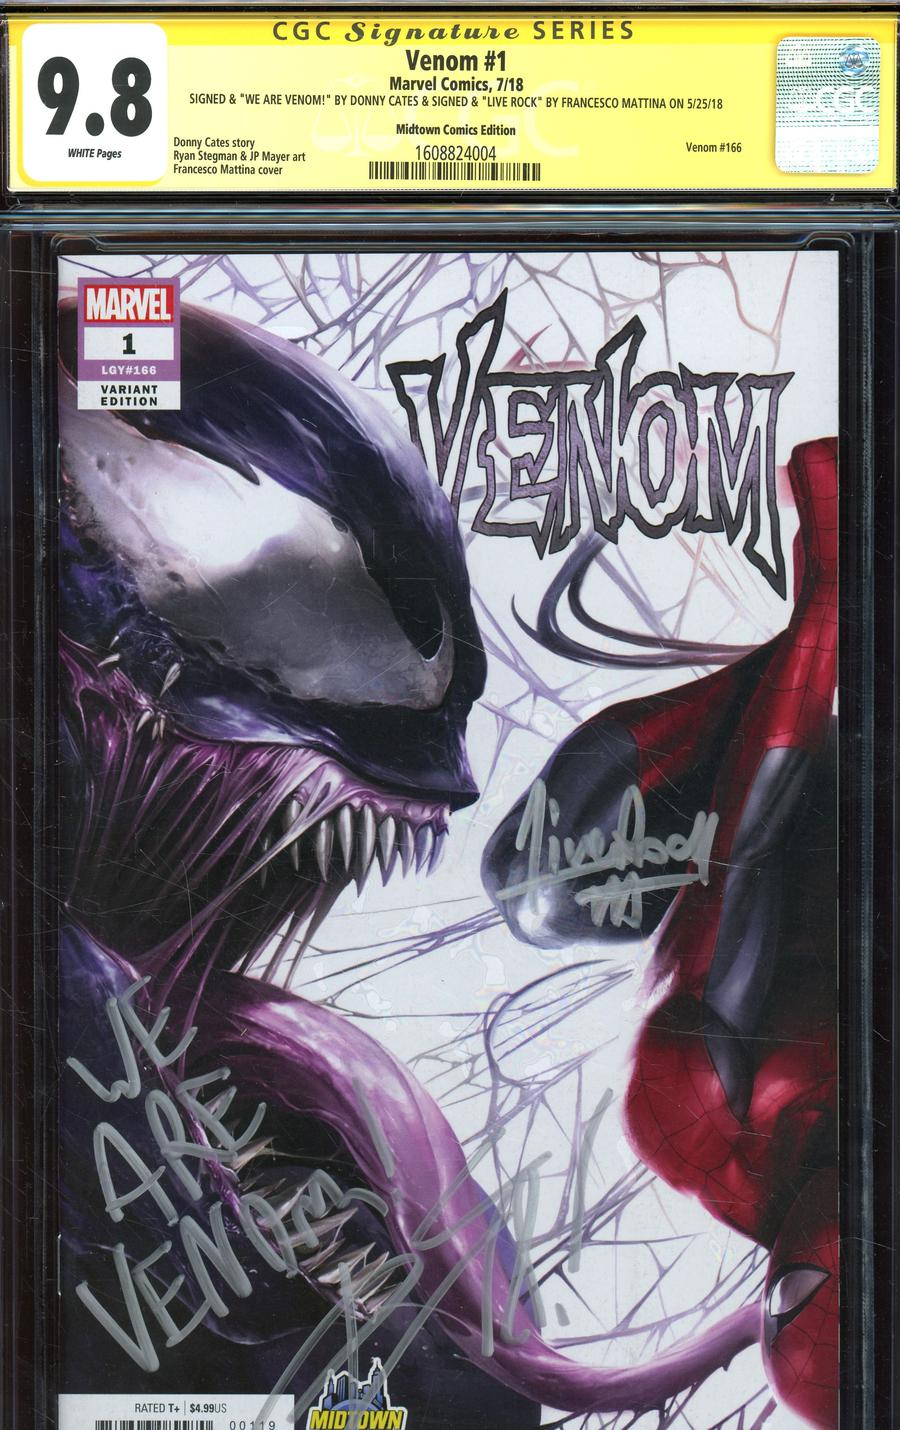 Venom Vol 4 #1  Midtown Exclusive Francesco Mattina & Will Sliney Connecting Variant Cover Signed By Francesco Mattina & Donny Cates CGC 9.8 (Left Sid